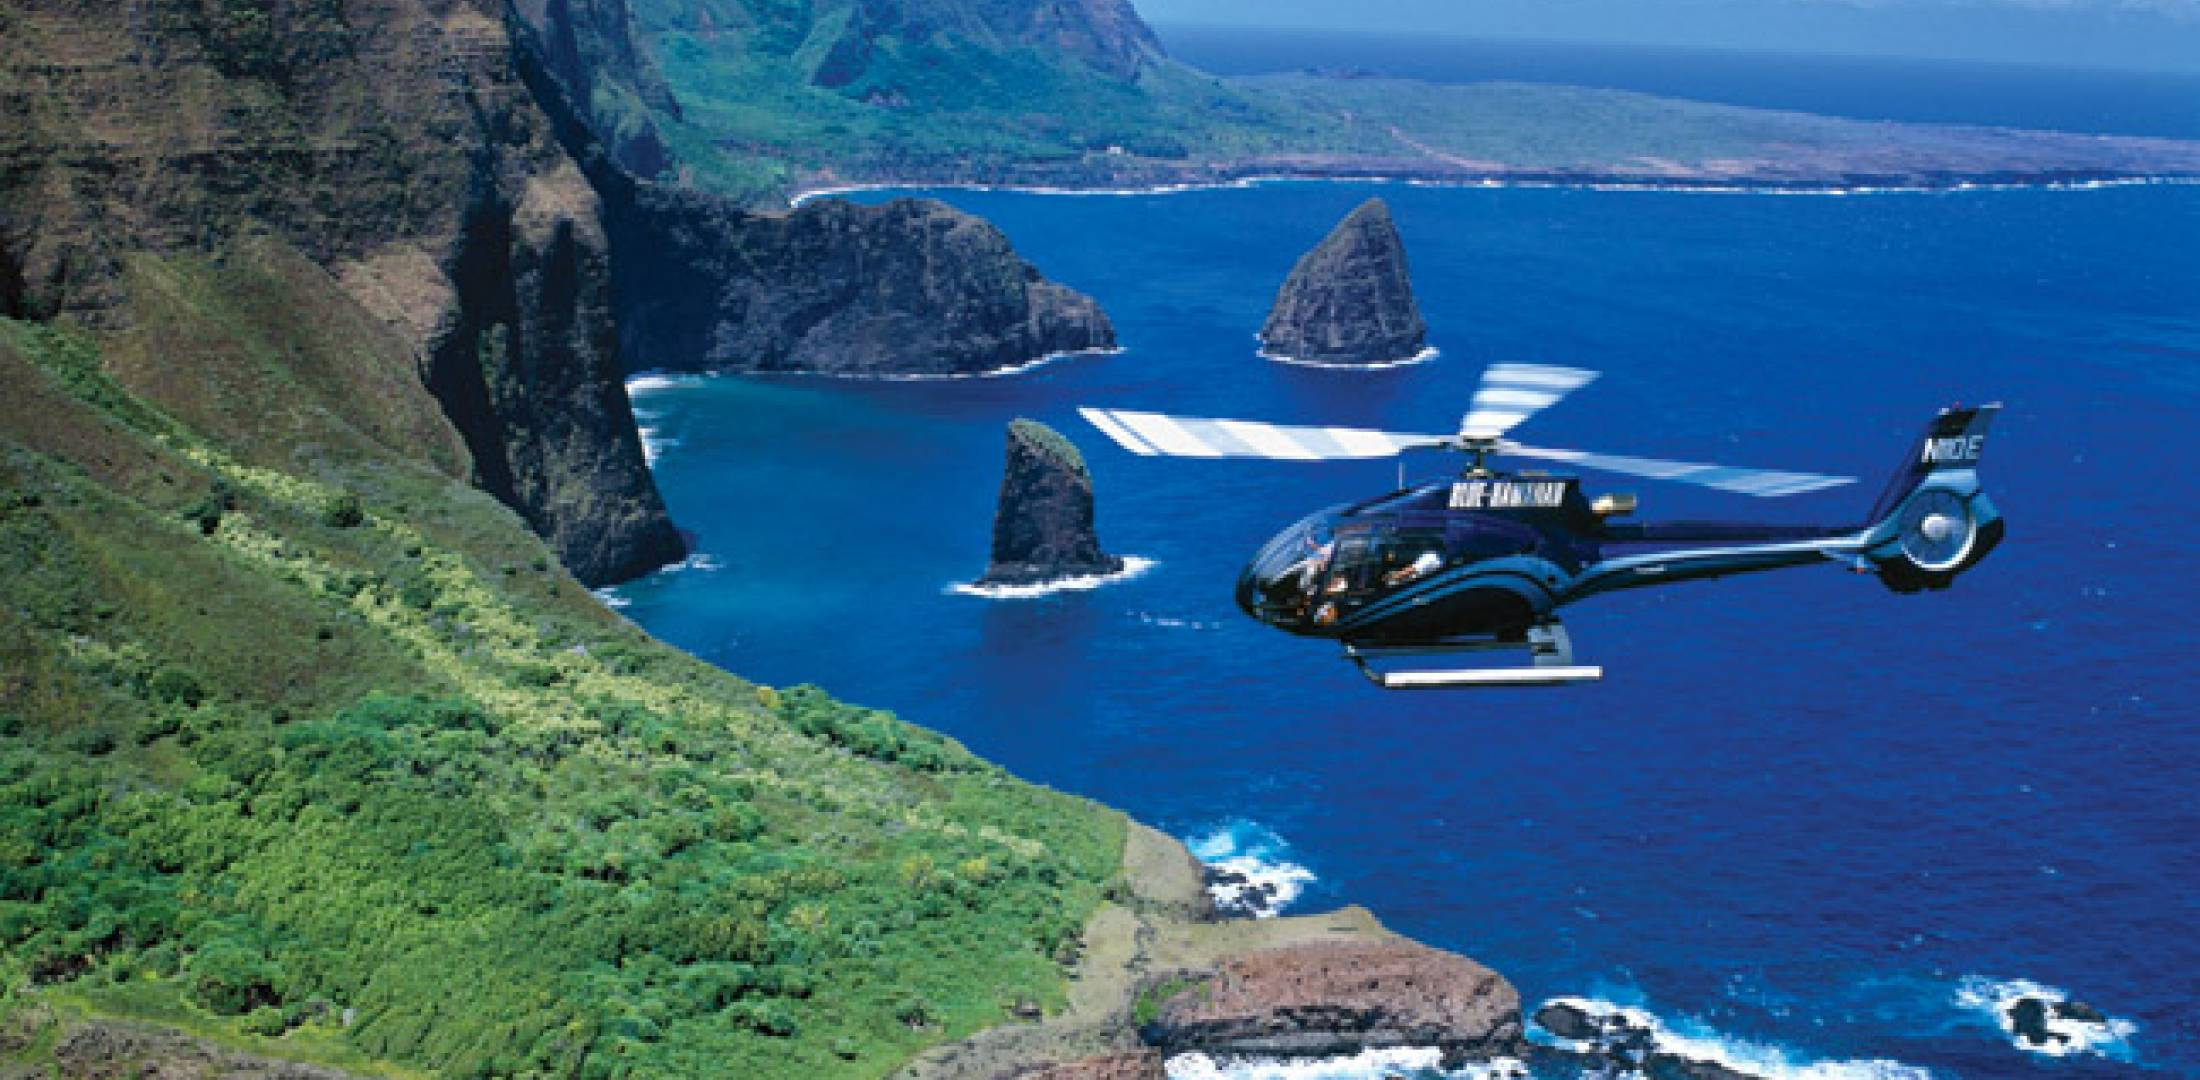 Air-tour operator Blue Hawaiian flies its 24-strong Eurocopter fleet on five of the state's six islands.